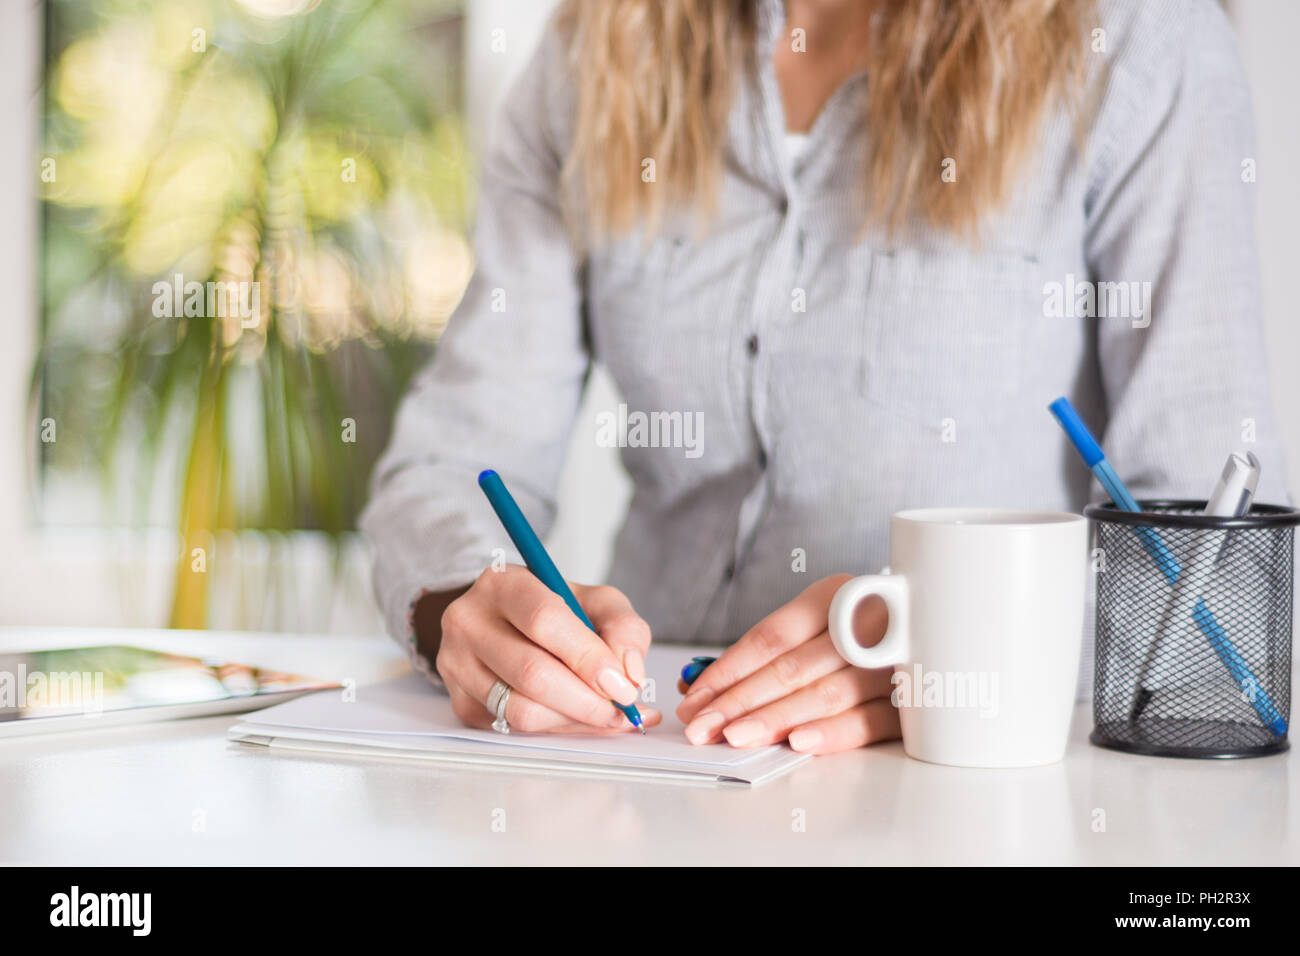 Business woman writing in document with pen at desk in modern office. Girl wears elegant shirt on strips. Big green blurred windows in background - Stock Image